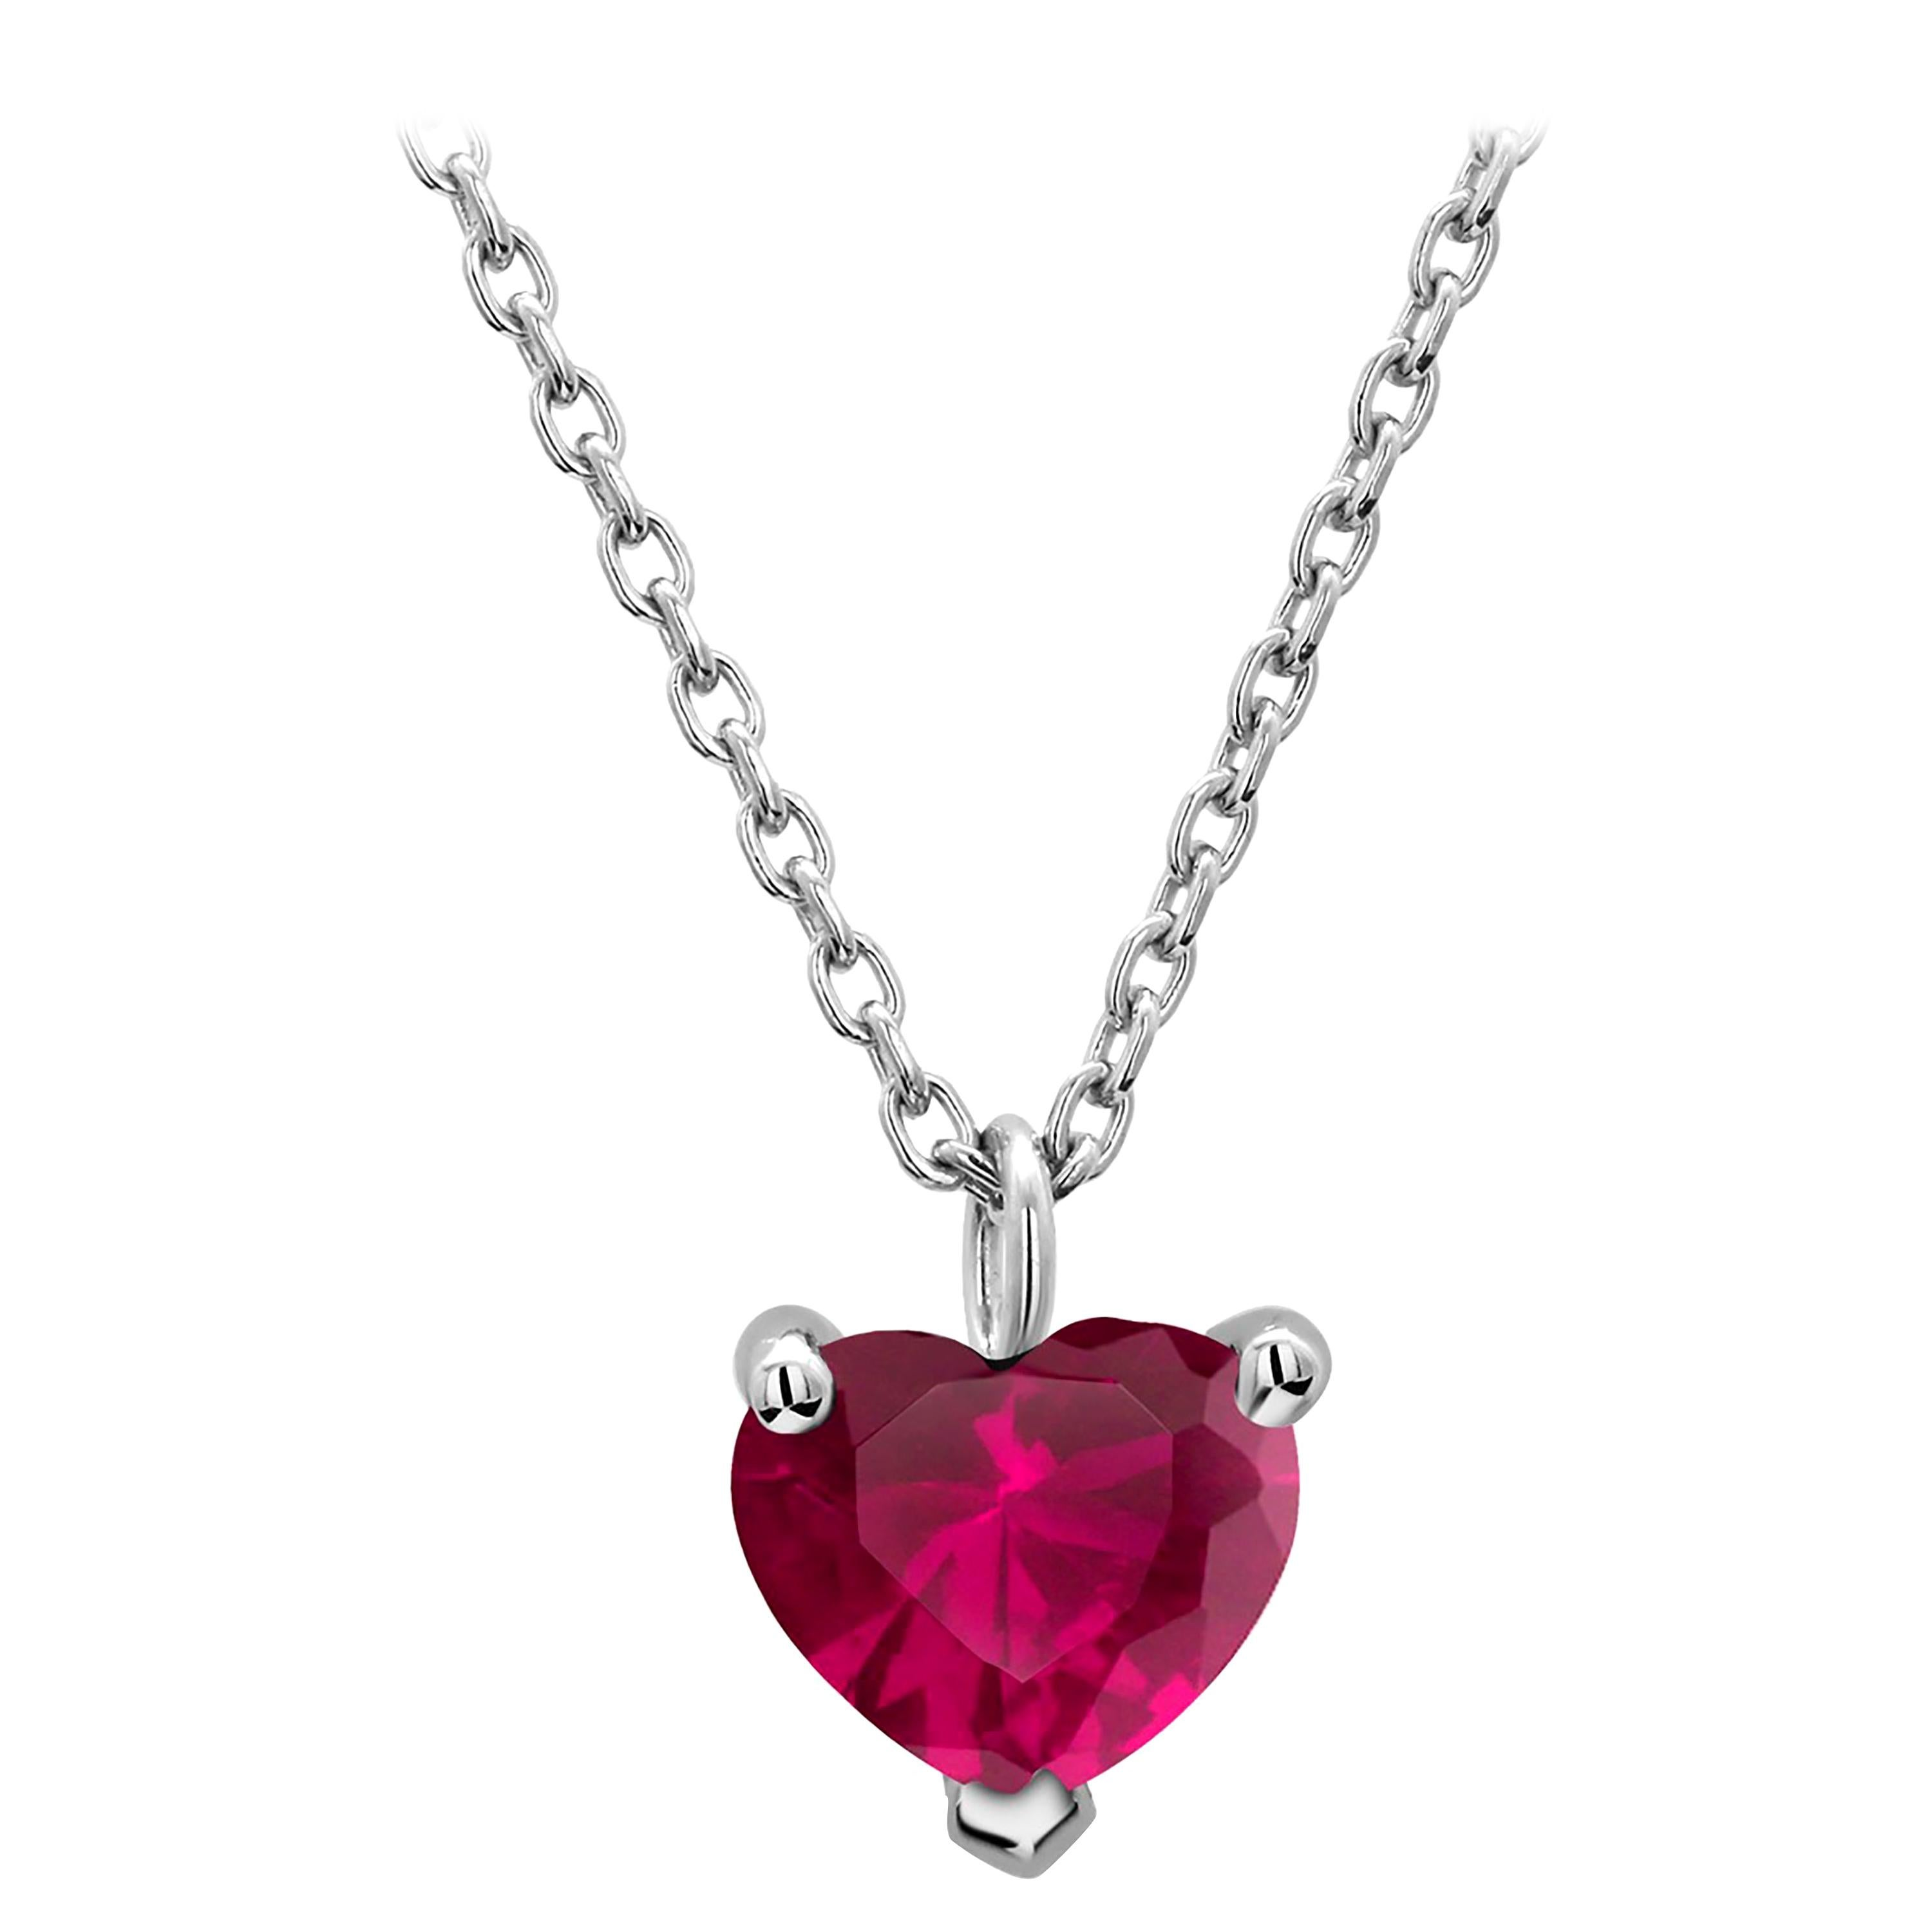 White Gold Heart Shape Red Burma Ruby Drop Necklace Pendant